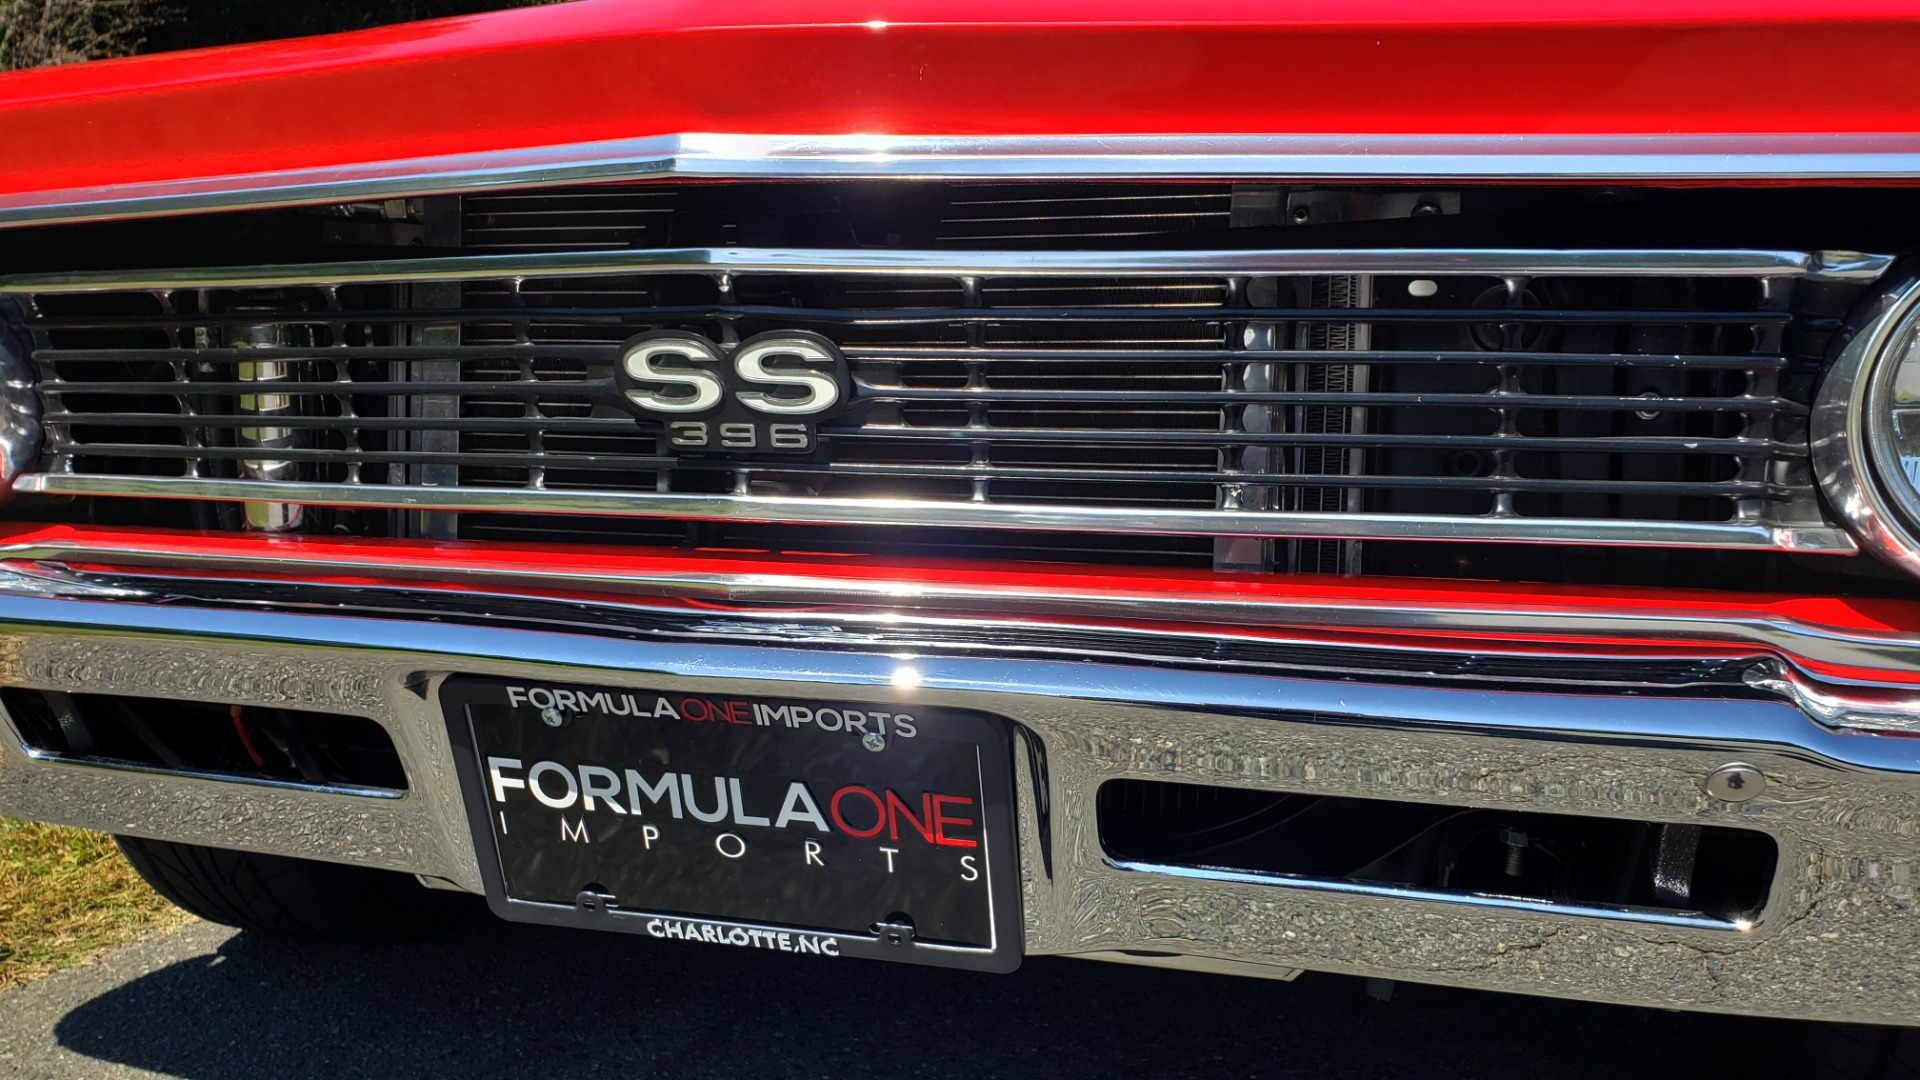 Used 1966 Chevrolet CHEVELLE SS 396 CUSTOM RESTO-MOD / 4-SPEED MANUAL / 12-BOLT REAR for sale $79,999 at Formula Imports in Charlotte NC 28227 19